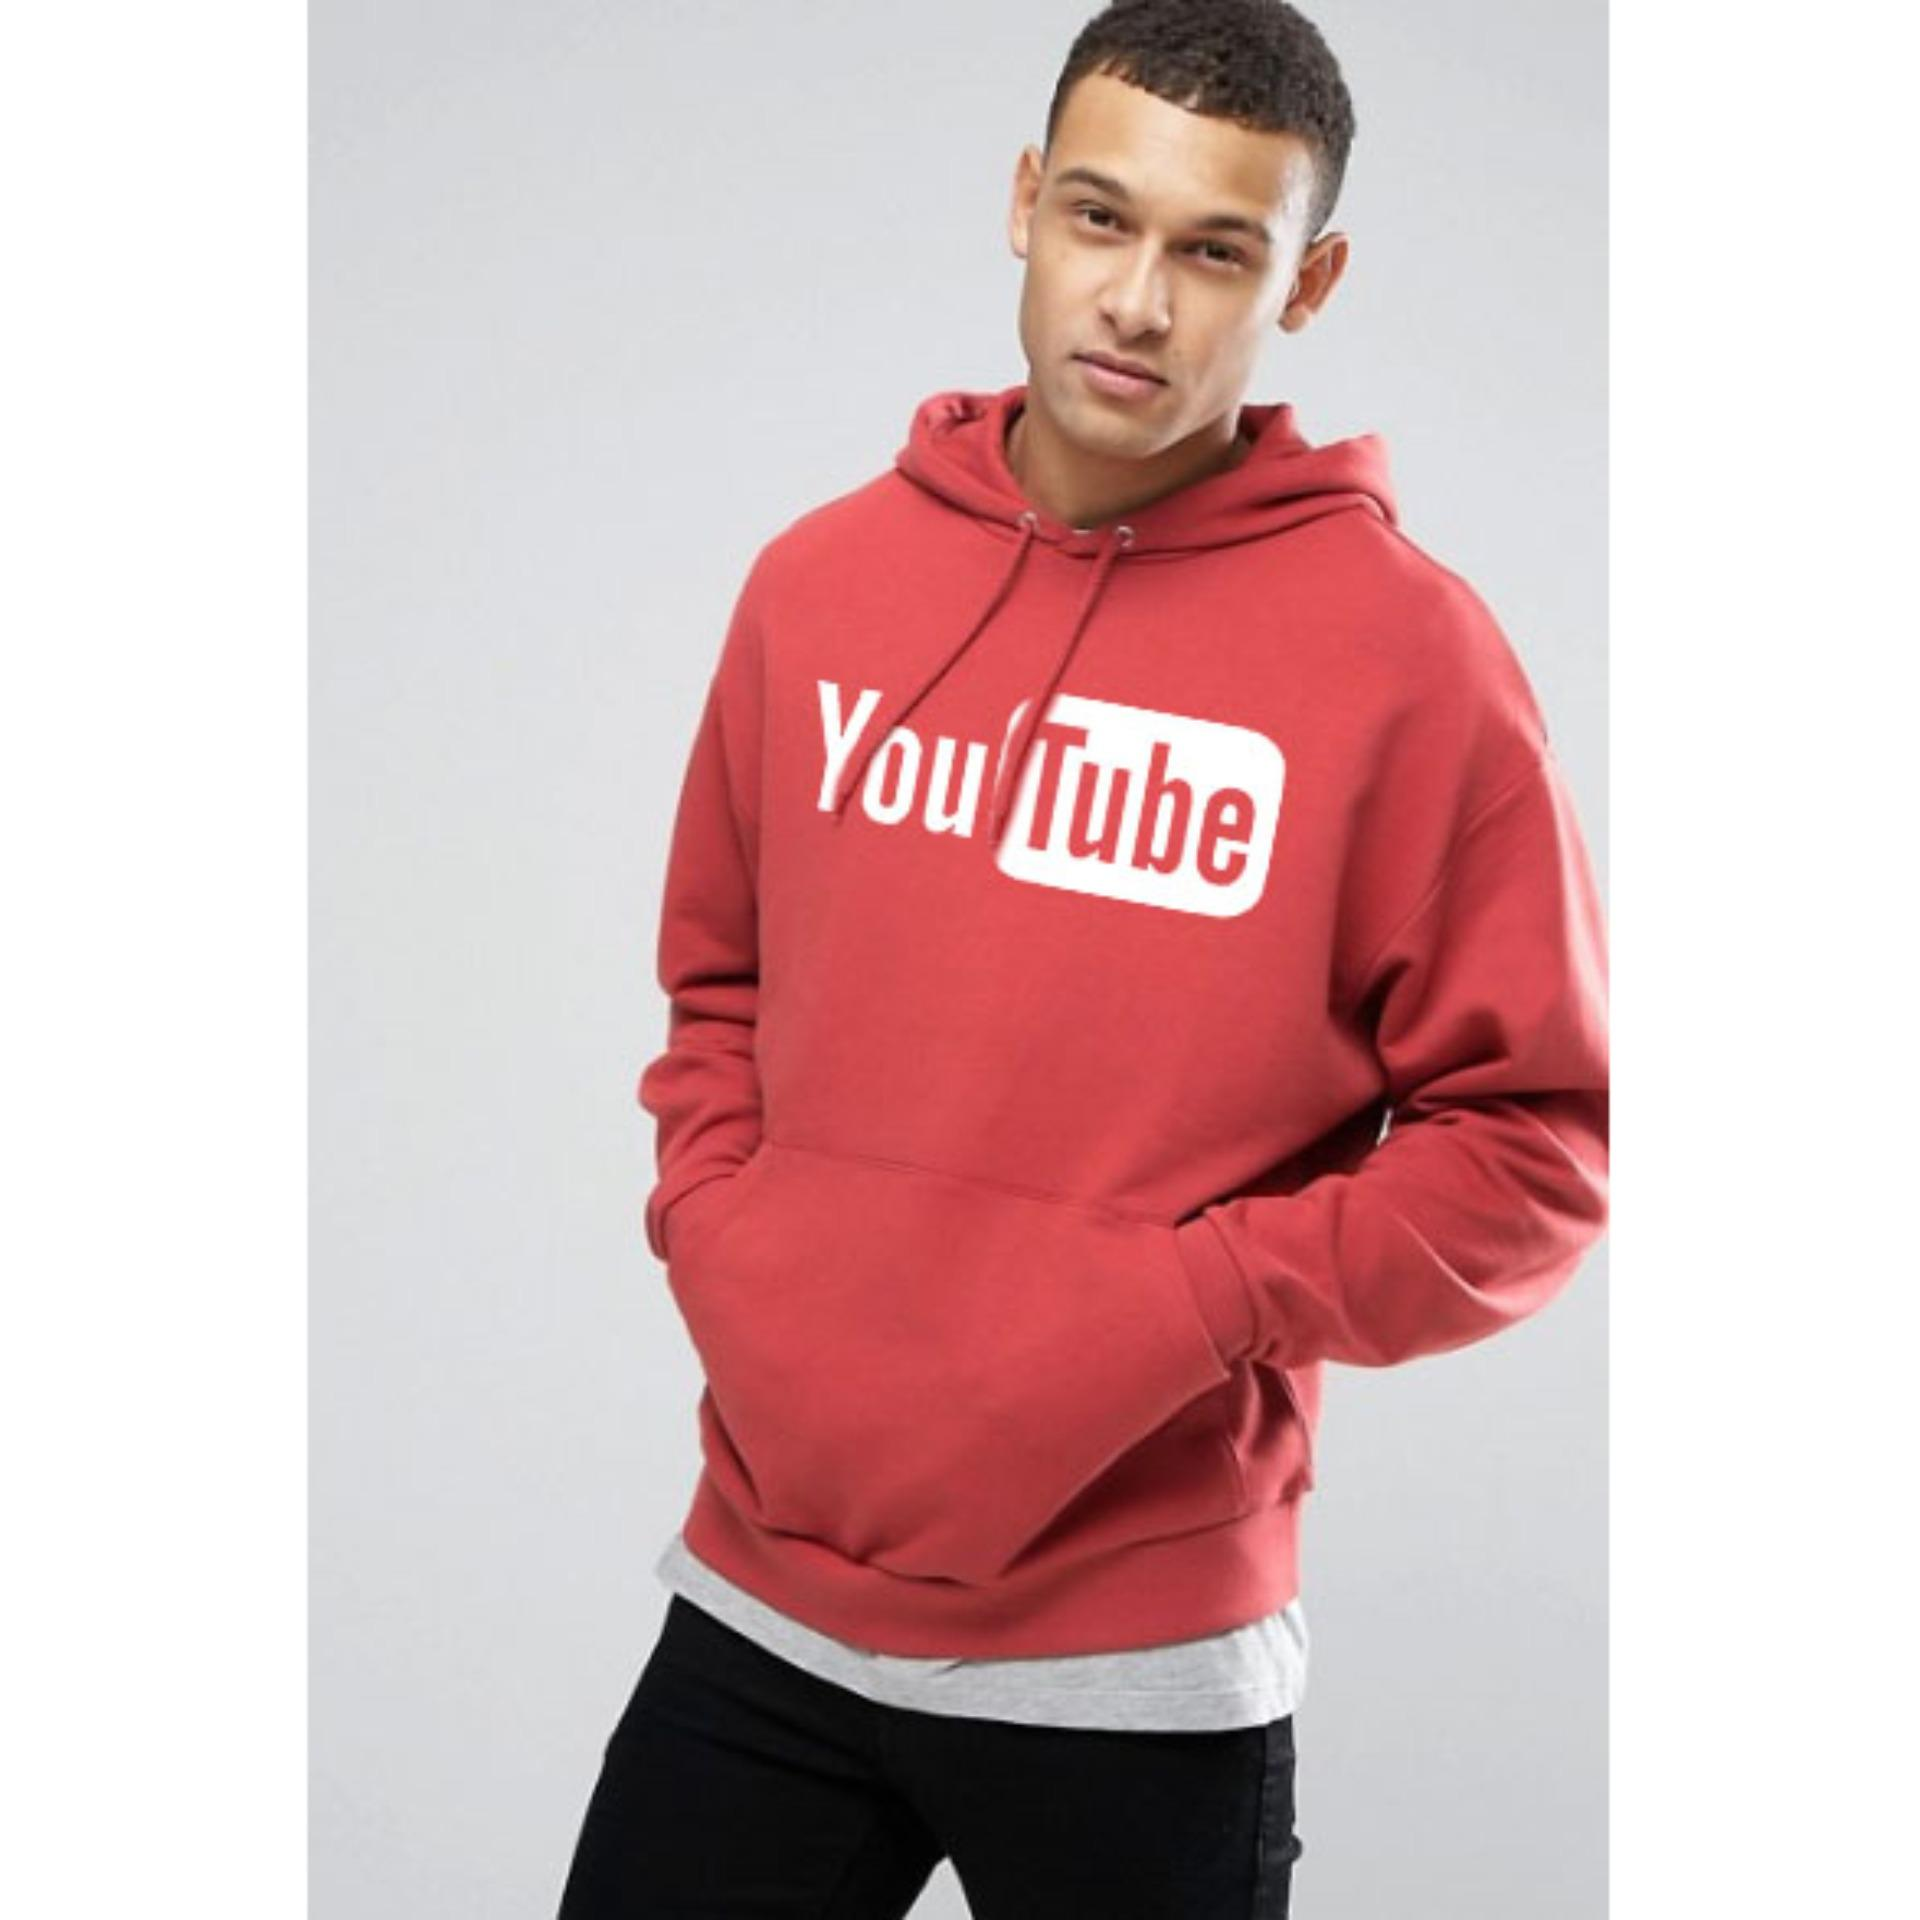 Beli Just Cloth Jaket Pullover Hoodie Social Media Youtube Cicil